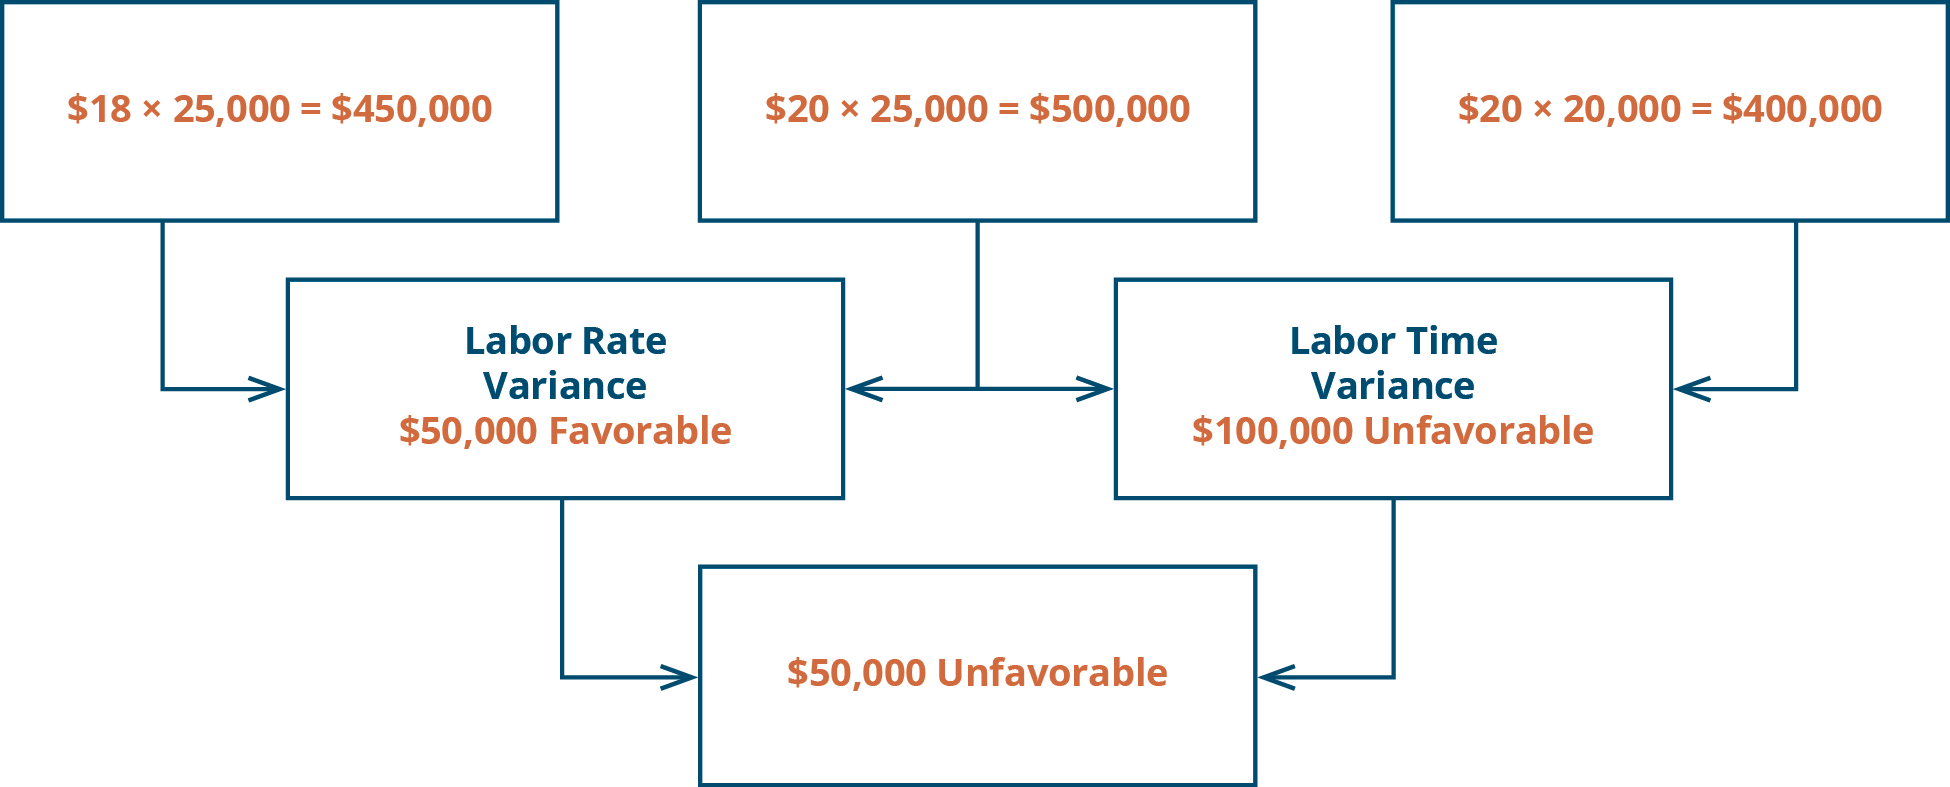 Labor Rate Variance $18 times 25,000 equals $450,000. $20 times 25,000 equals $500,000. $50,000 favorable. Plus: Labor Quantity Variance $20 times 25,000 equals $500,000. $20 times 20,000 equals $400,000. $100,000 unfavorable. Equals $50,000 unfavorable.